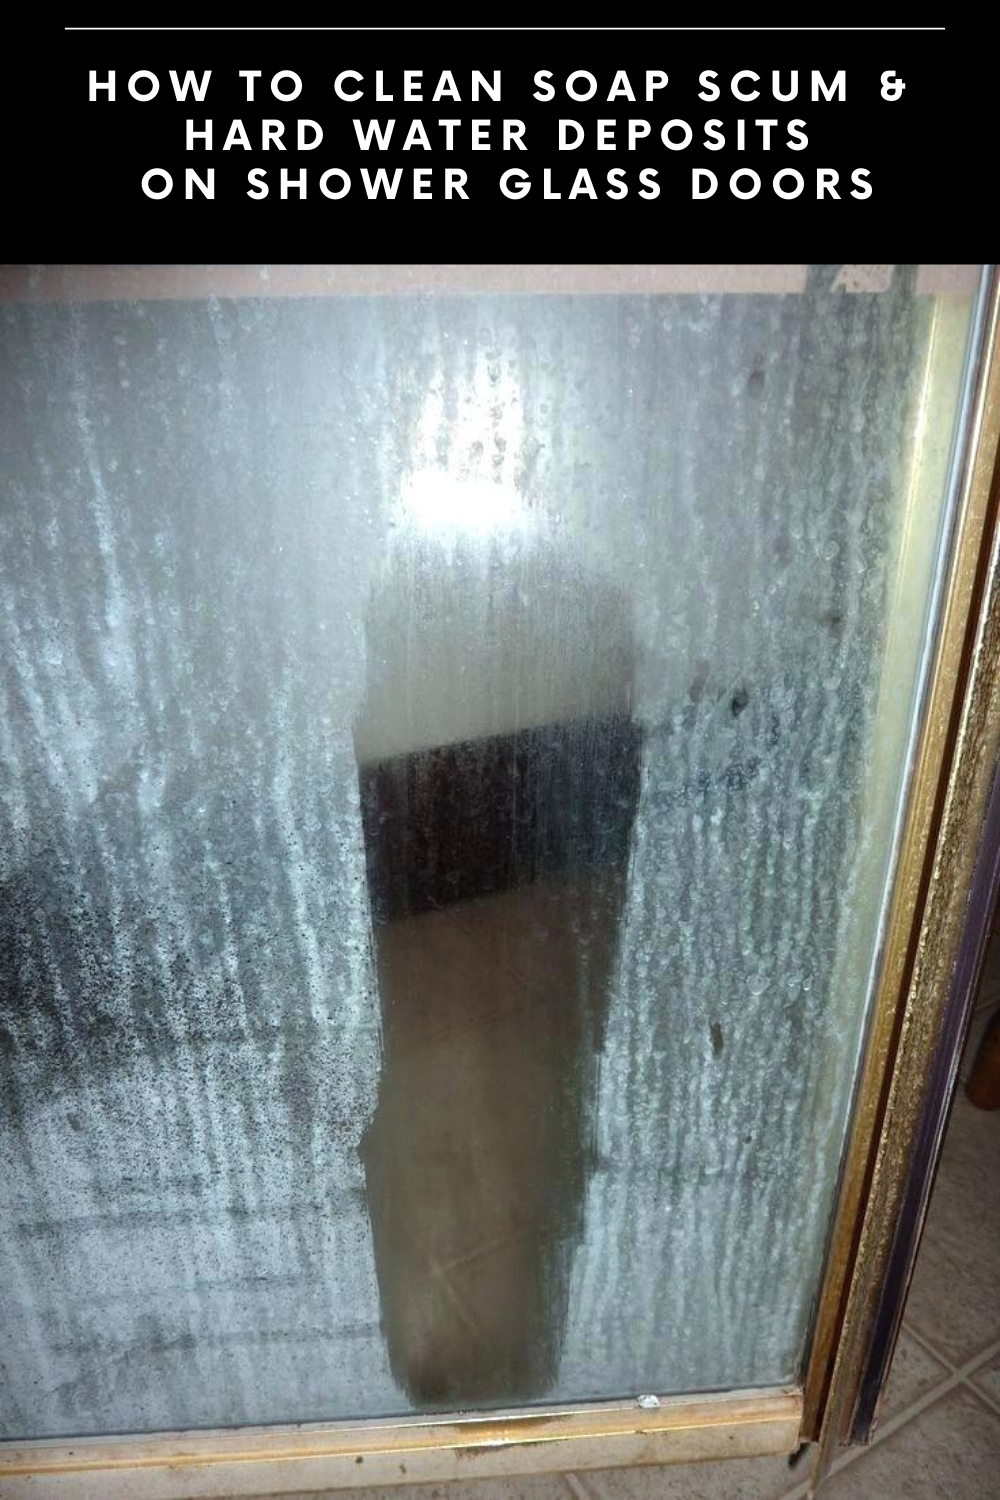 How To Clean Soap Scum And Hard Water Deposits On Shower Glass